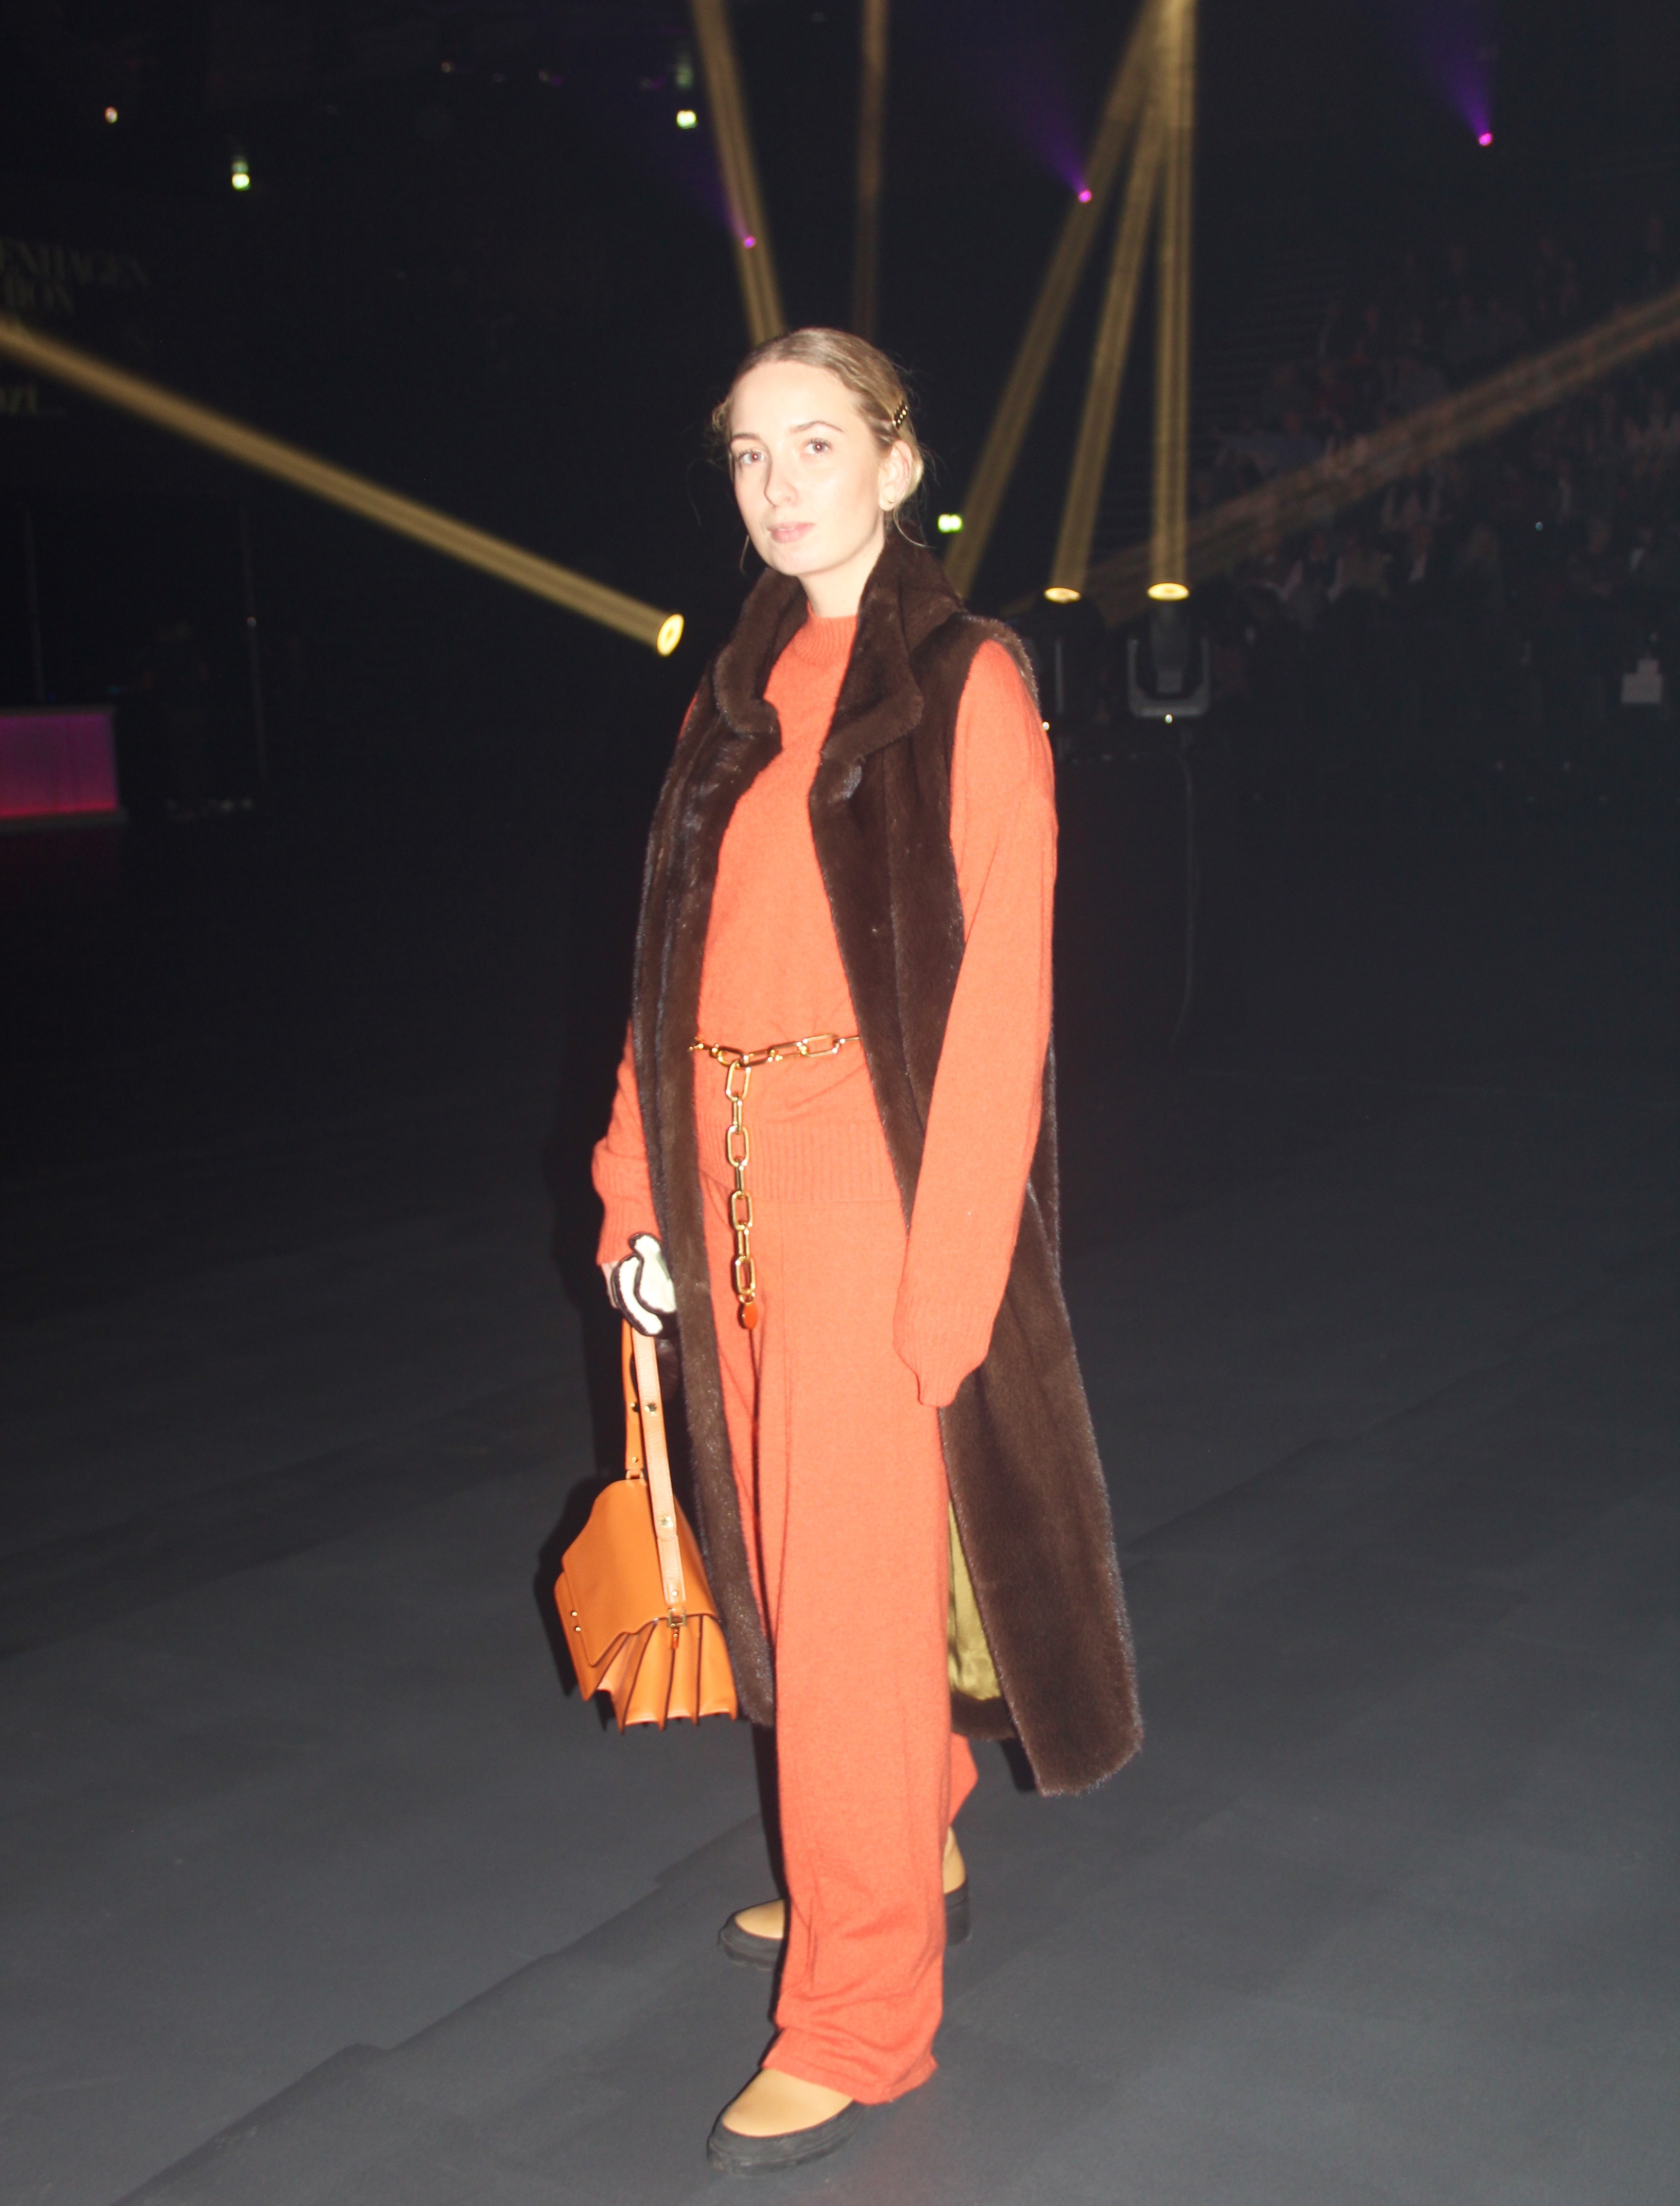 Street style, fashion week, fashion, orange, farver, style. (Foto: MY DAILY SPACE)